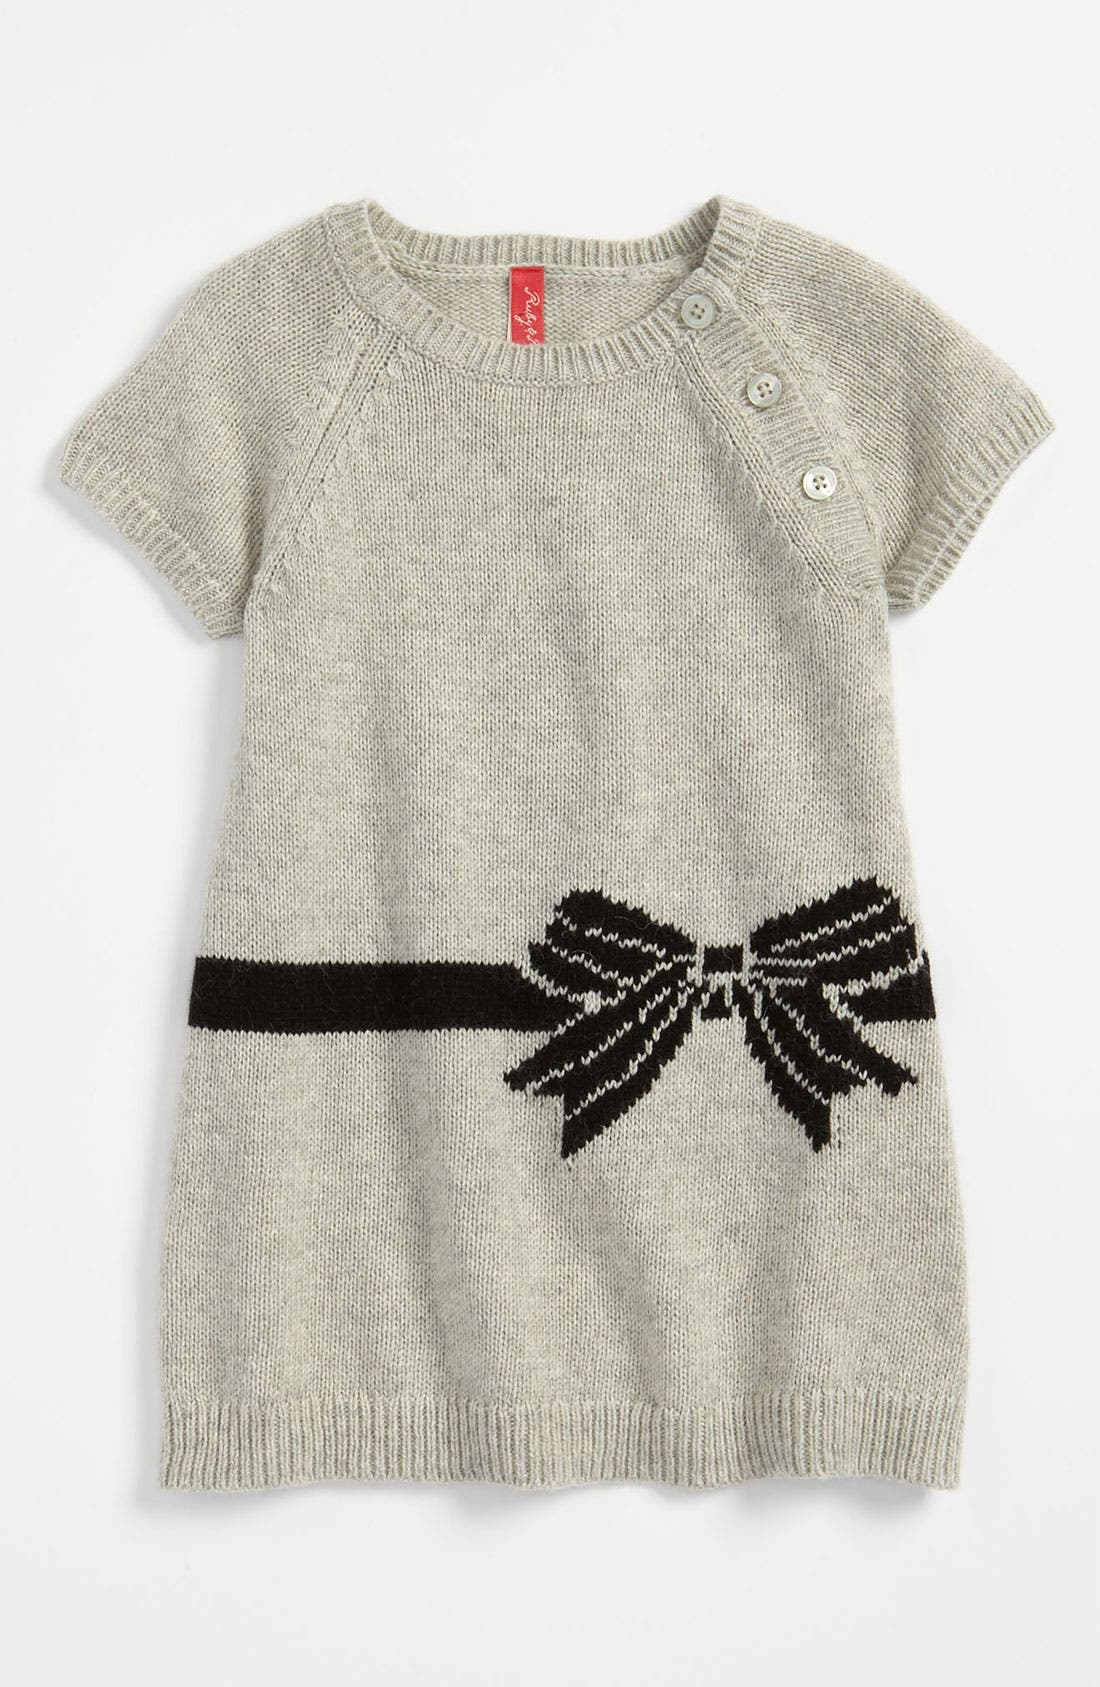 Alternate Image 1 Selected - Ruby & Bloom 'Paige' Sweater Dress (Infant)